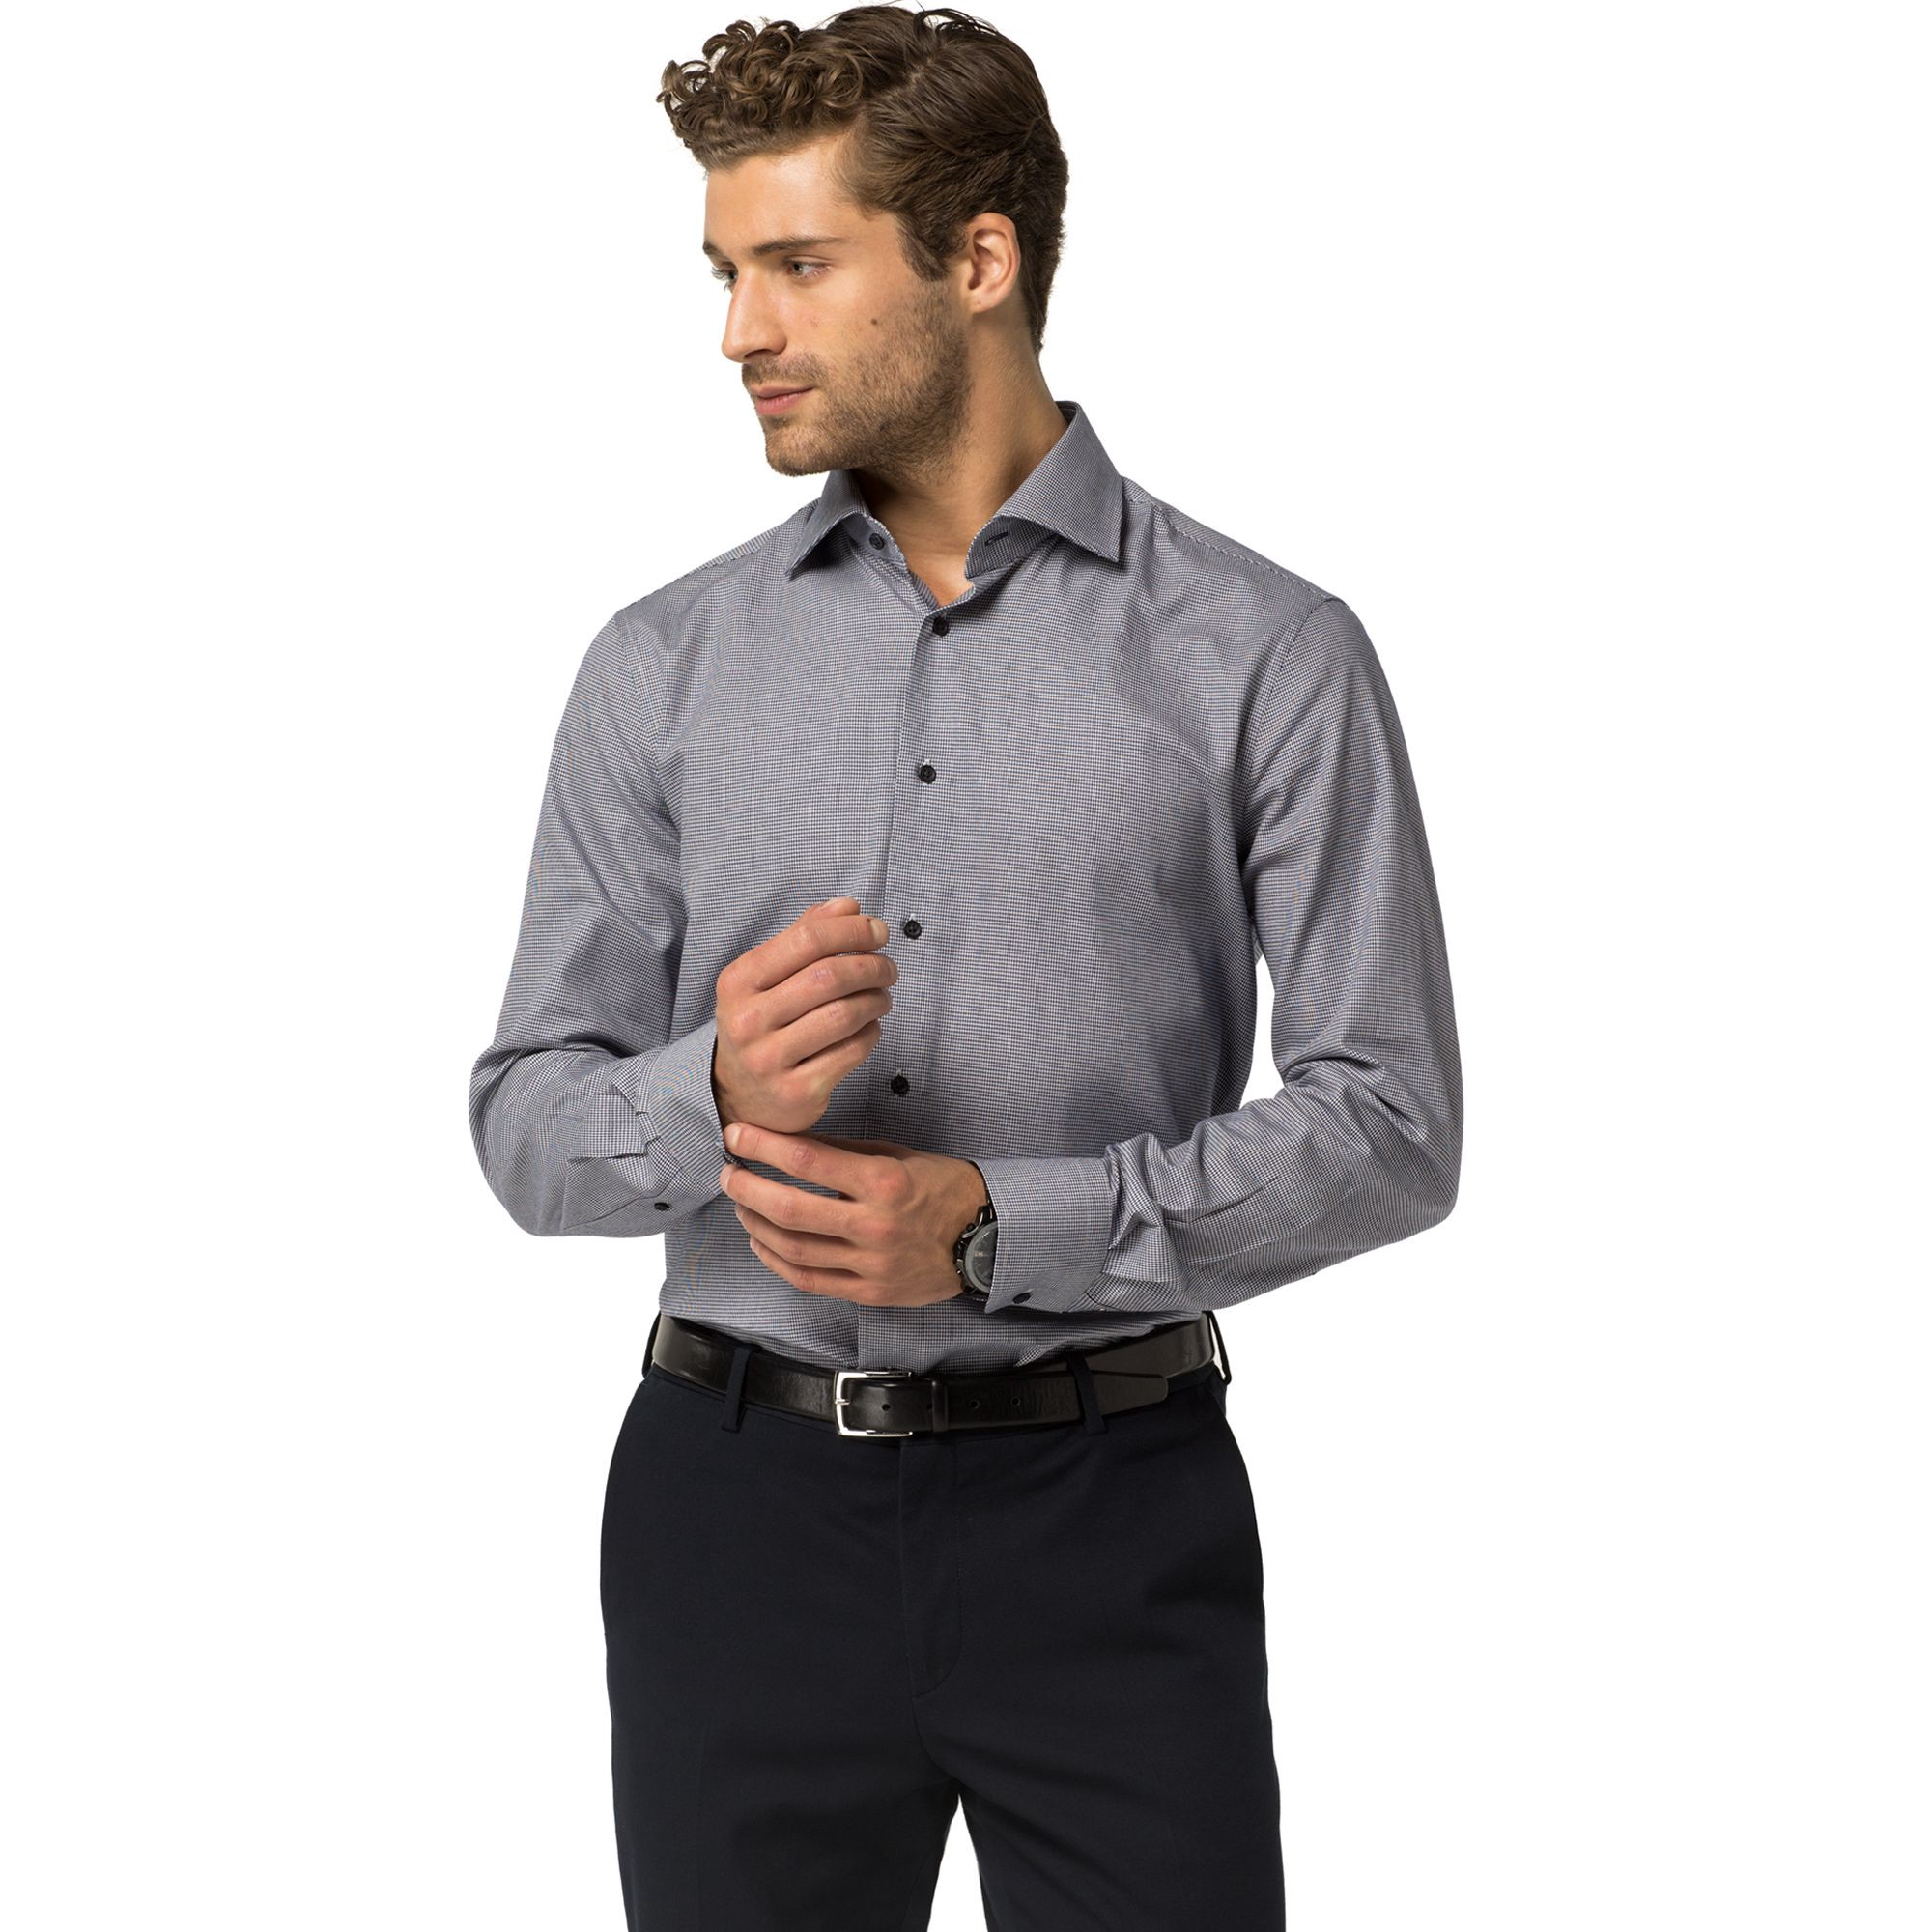 TOMMY HILFIGER Tailored Collection Fitted Dress Shirt - Navy